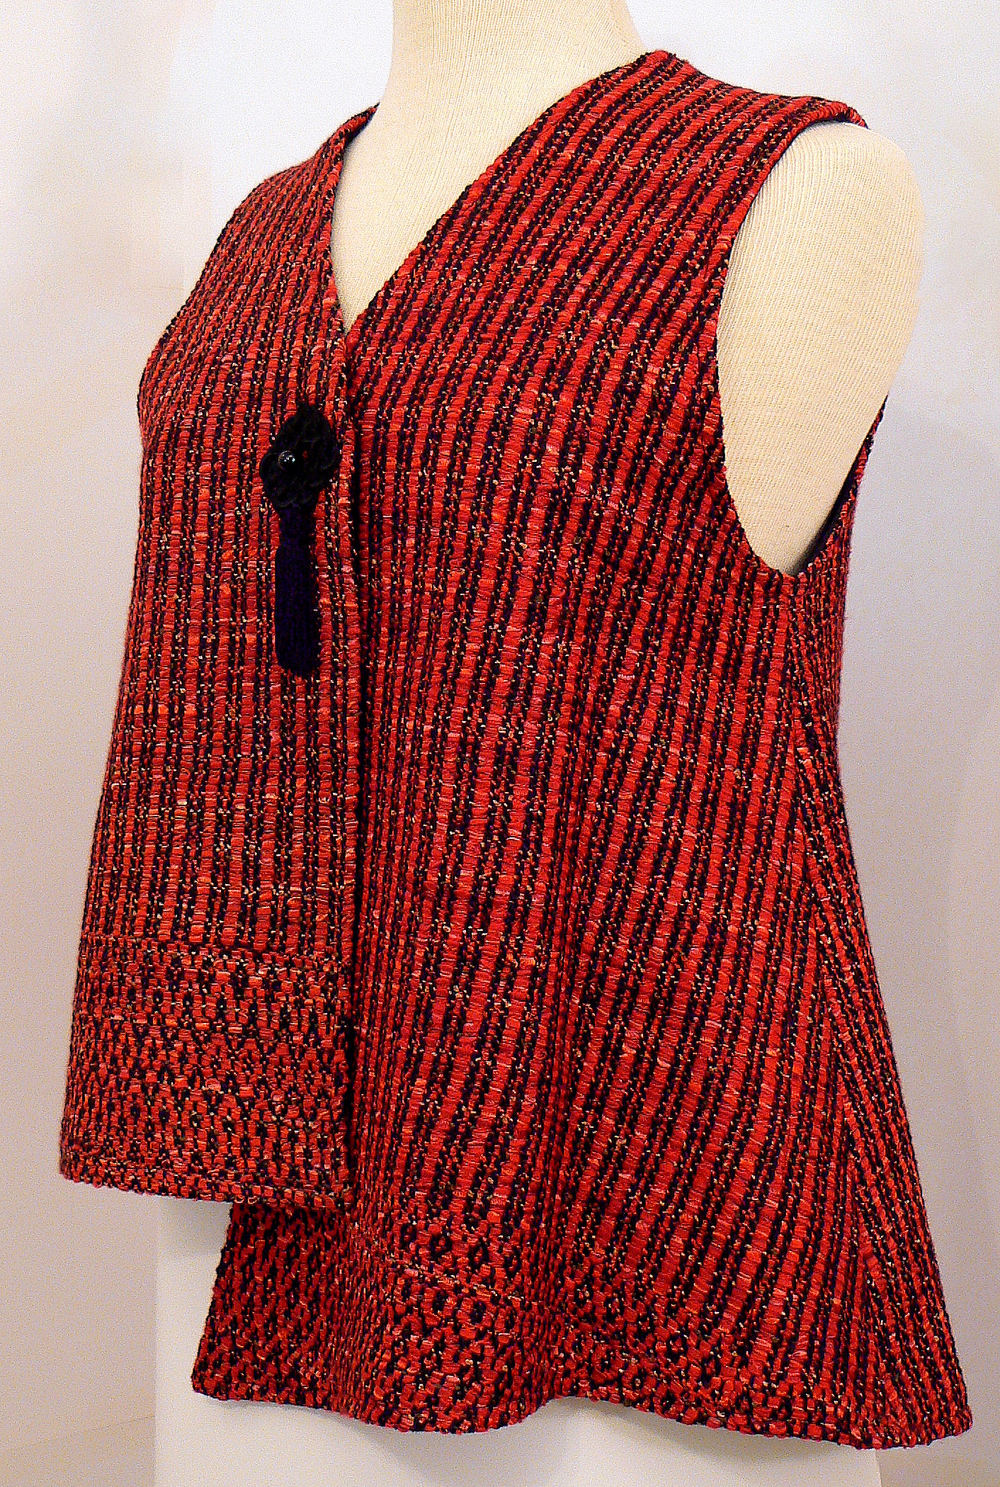 Handwoven Clothing, Vest, Kathleen Weir-West, 5-001.JPG